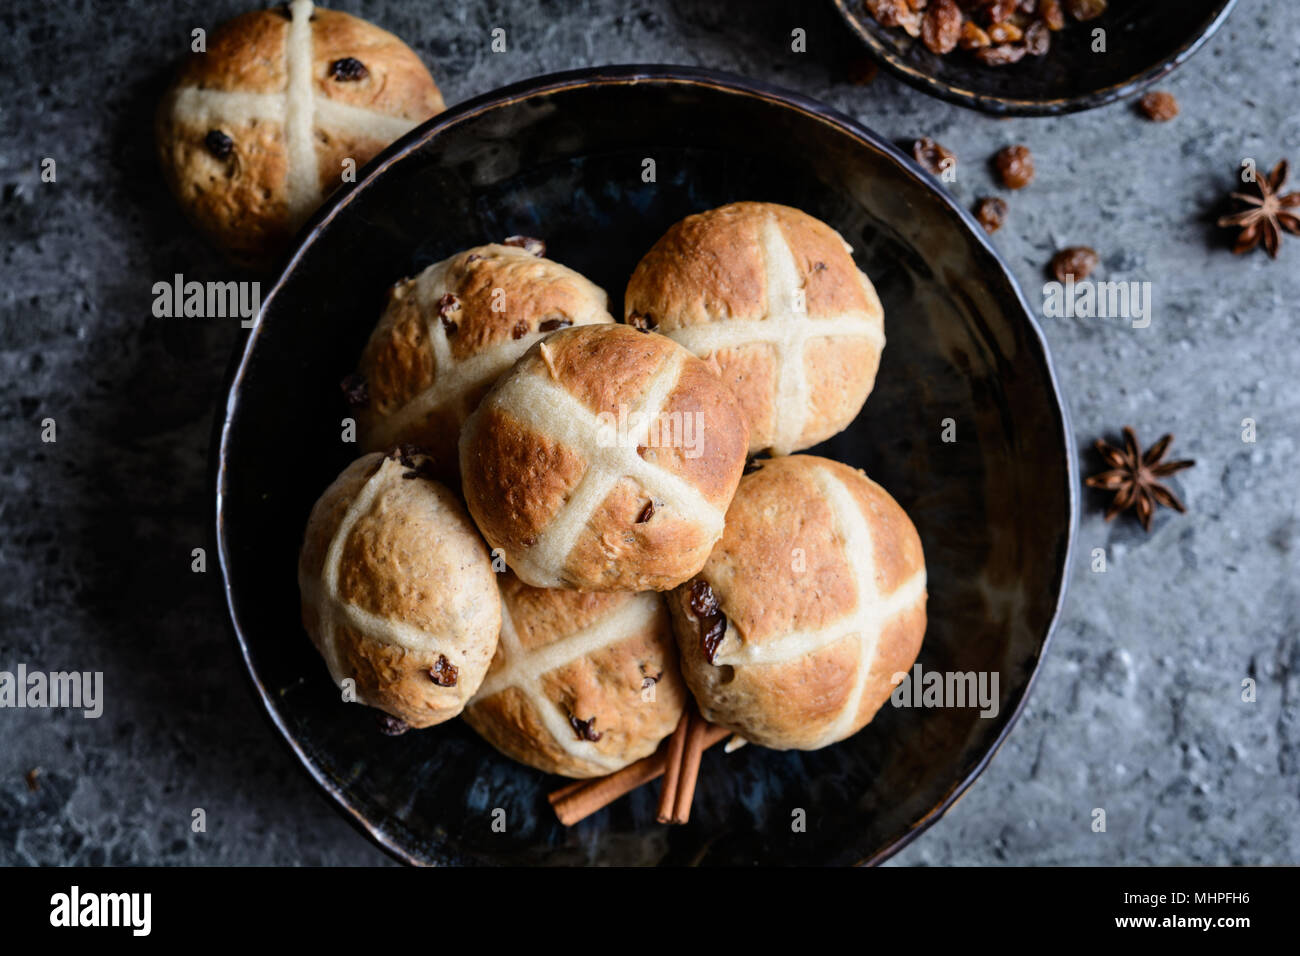 Hot Cross Buns - traditional Easter sweet spiced pies with raisins - Stock Image